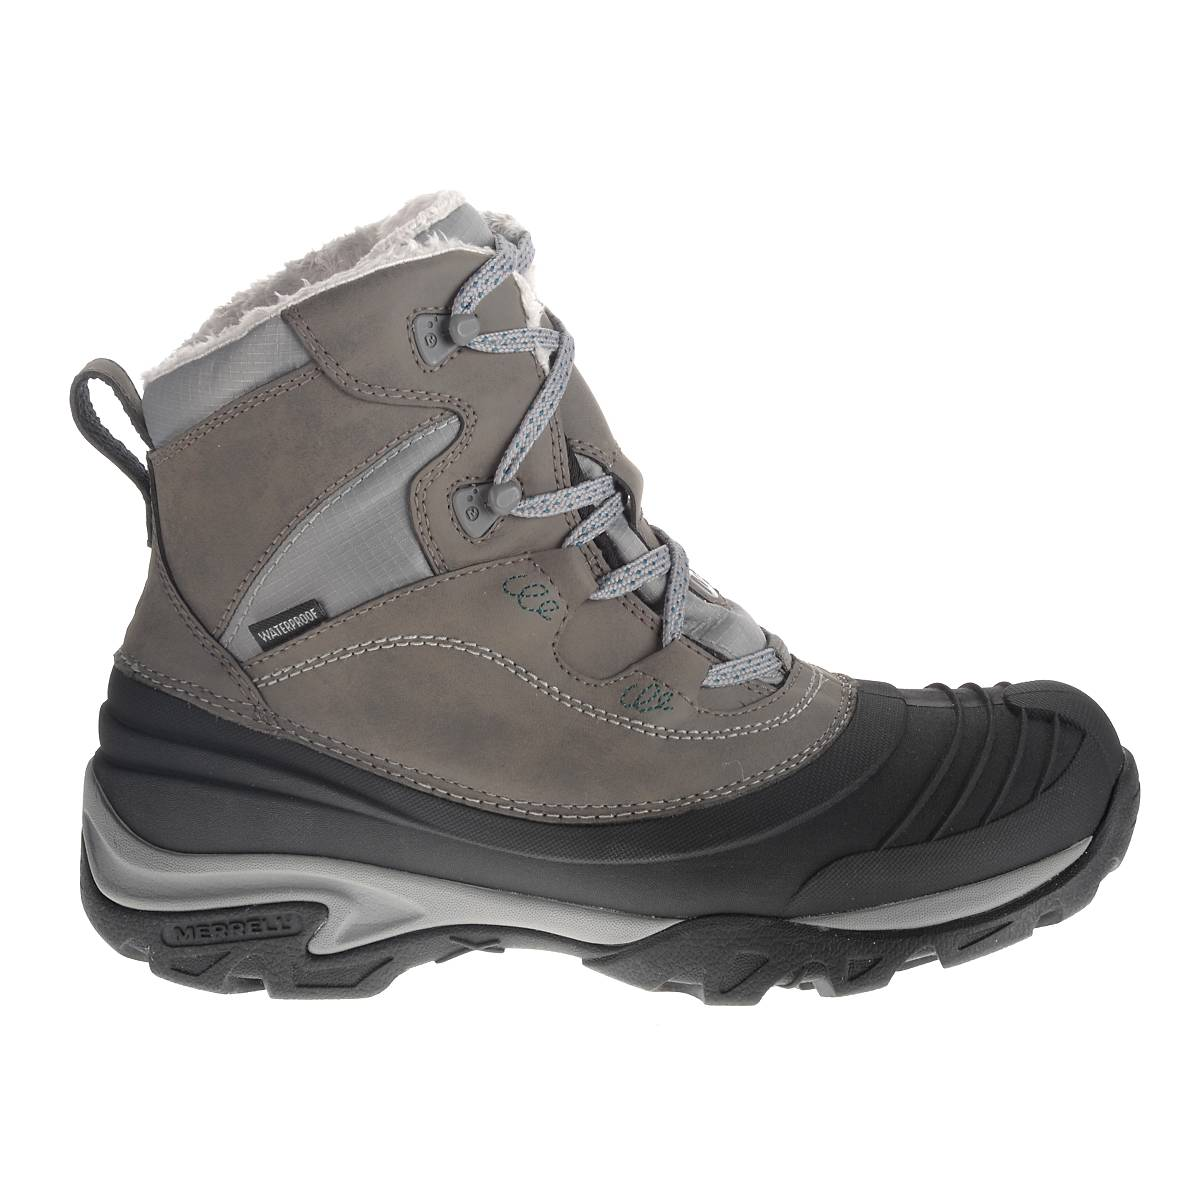 Merrell Snowbound Mid Waterproof Boots Womens